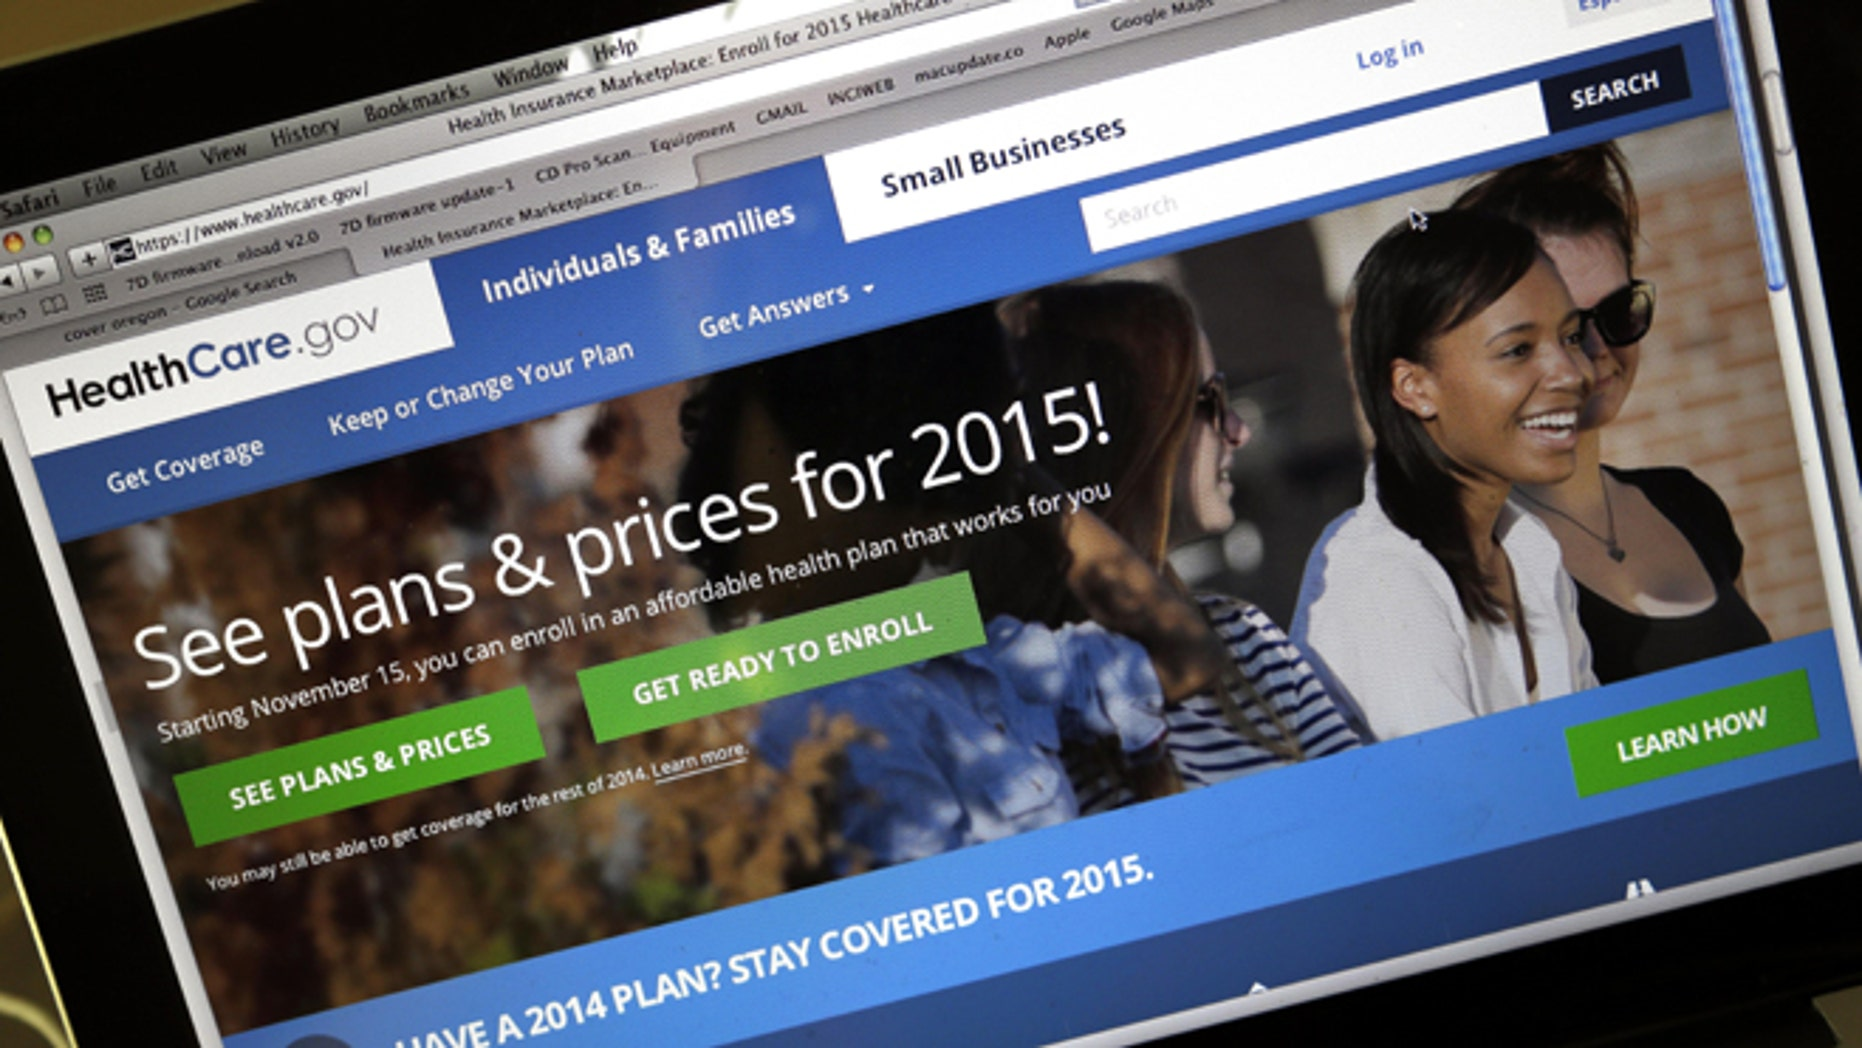 FILE -- Nov. 12, 2014: The HealthCare.gov website, where people can buy health insurance, on a laptop screen in Portland, Ore. The second open enrollment period for buying health insurance under the federal Affordable Care Act began on Saturday, Nov. 15, 2014.